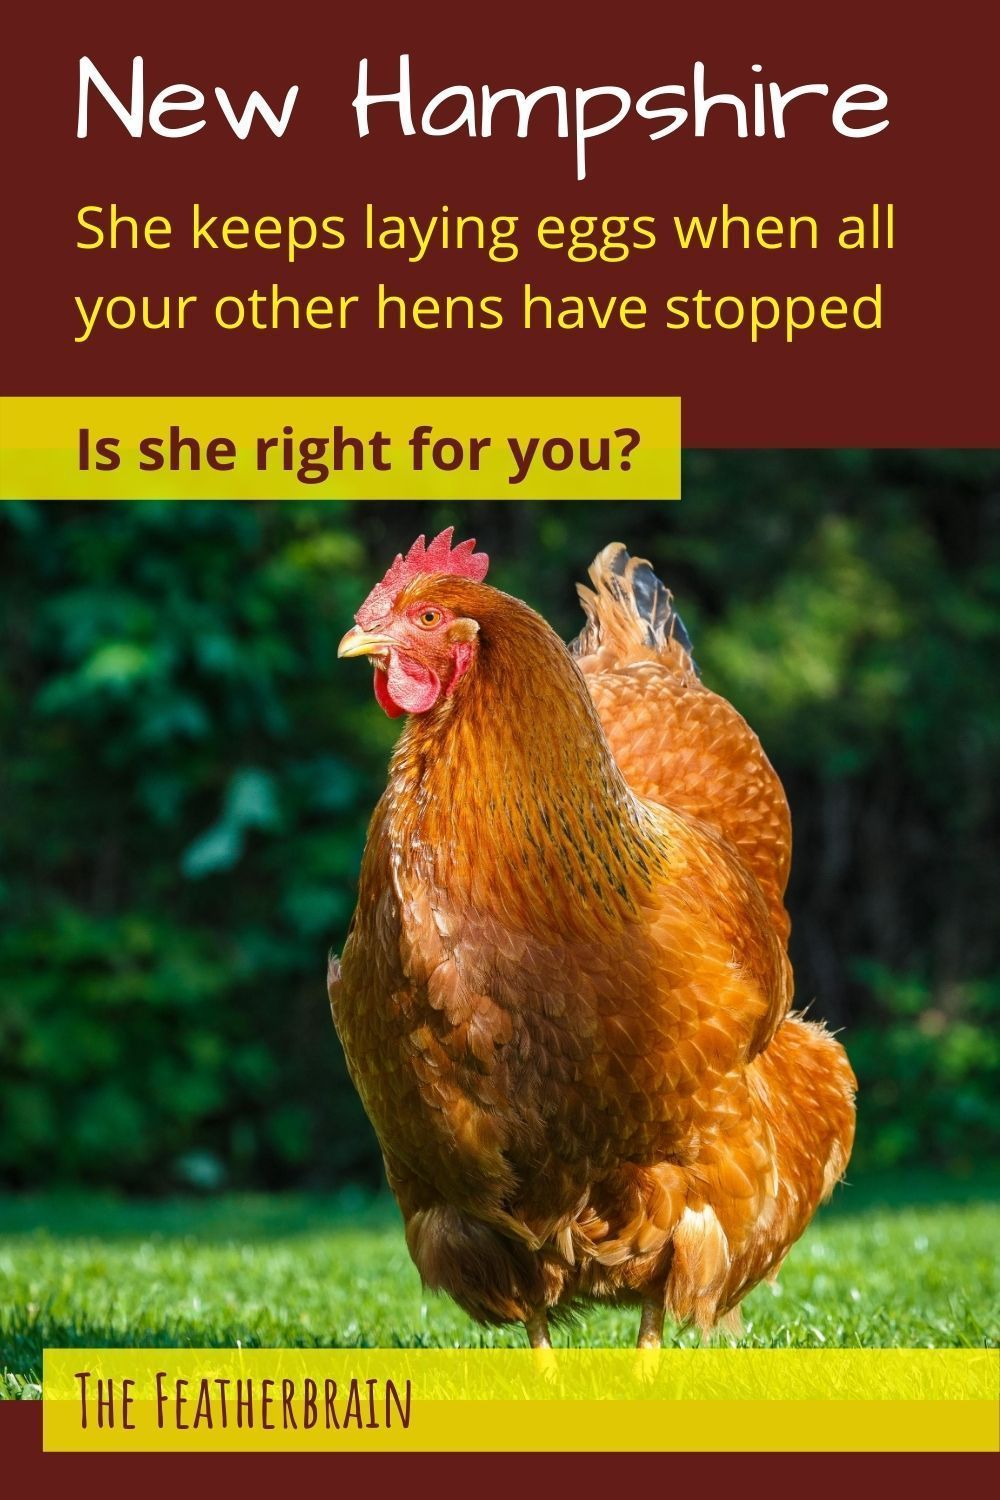 Considering New Hampshire chickens? The 18 things